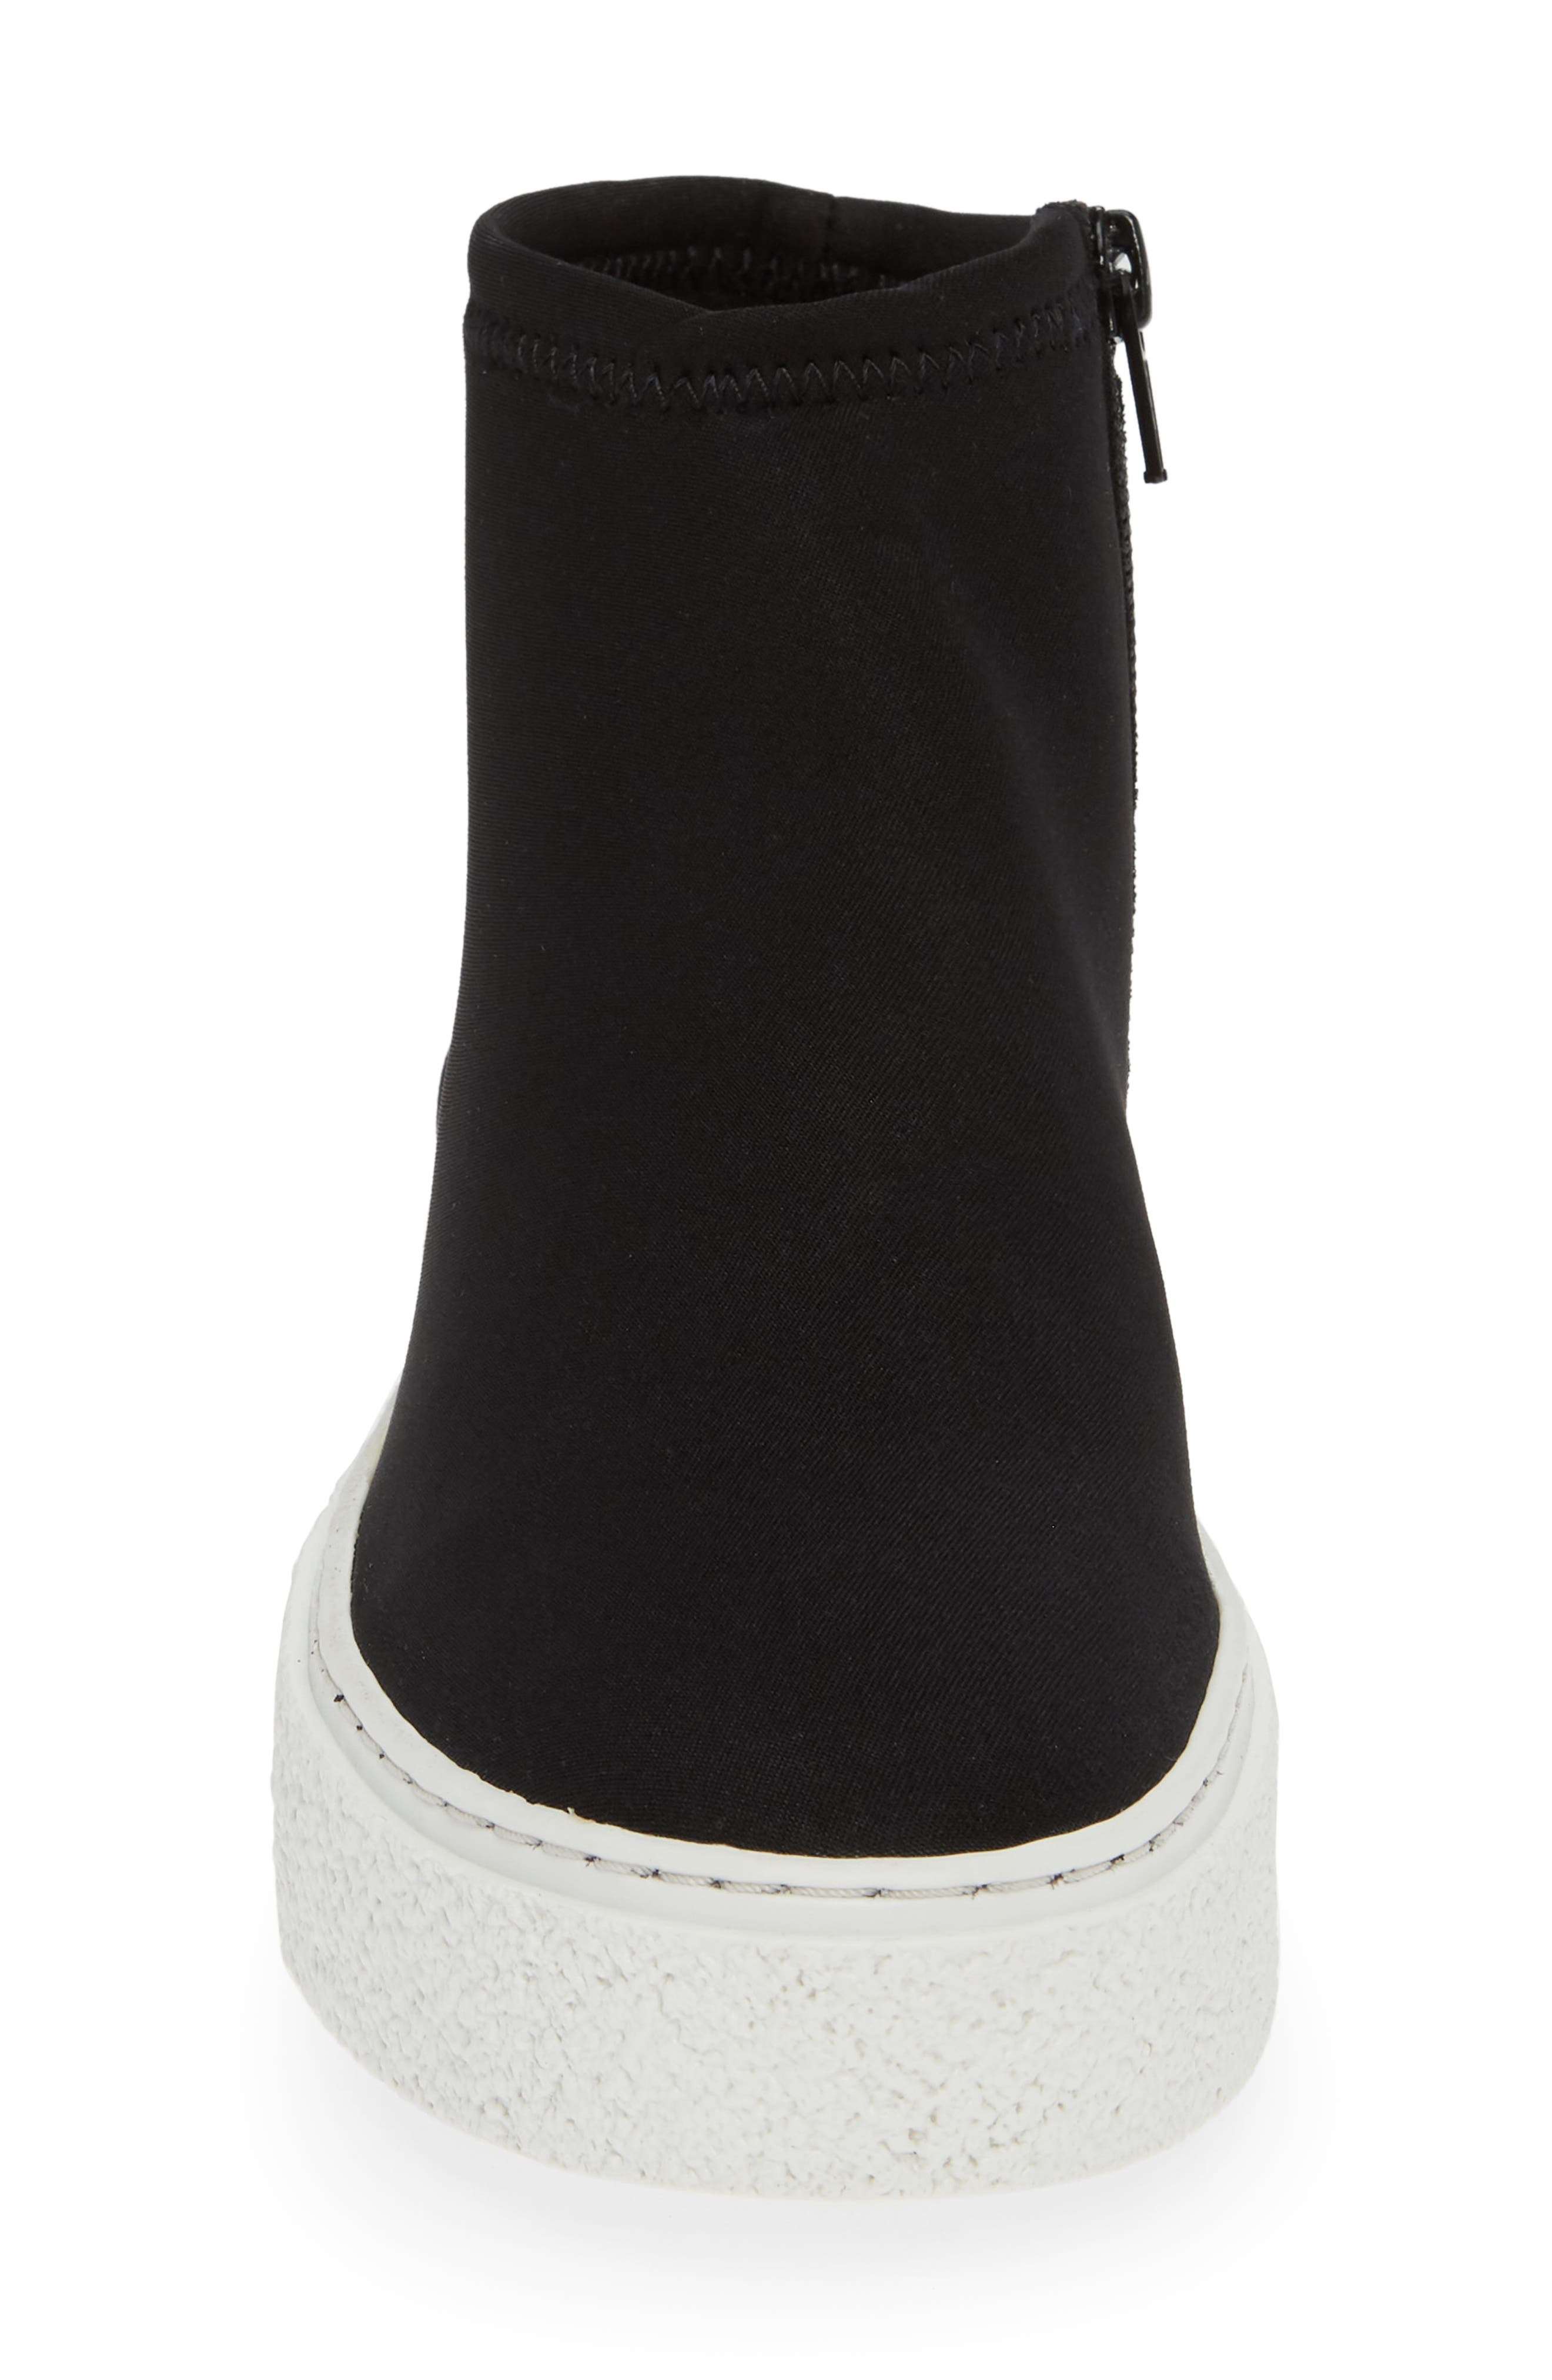 Inventive High Top Sneaker,                             Alternate thumbnail 4, color,                             BLACK NEOPRENE FABRIC